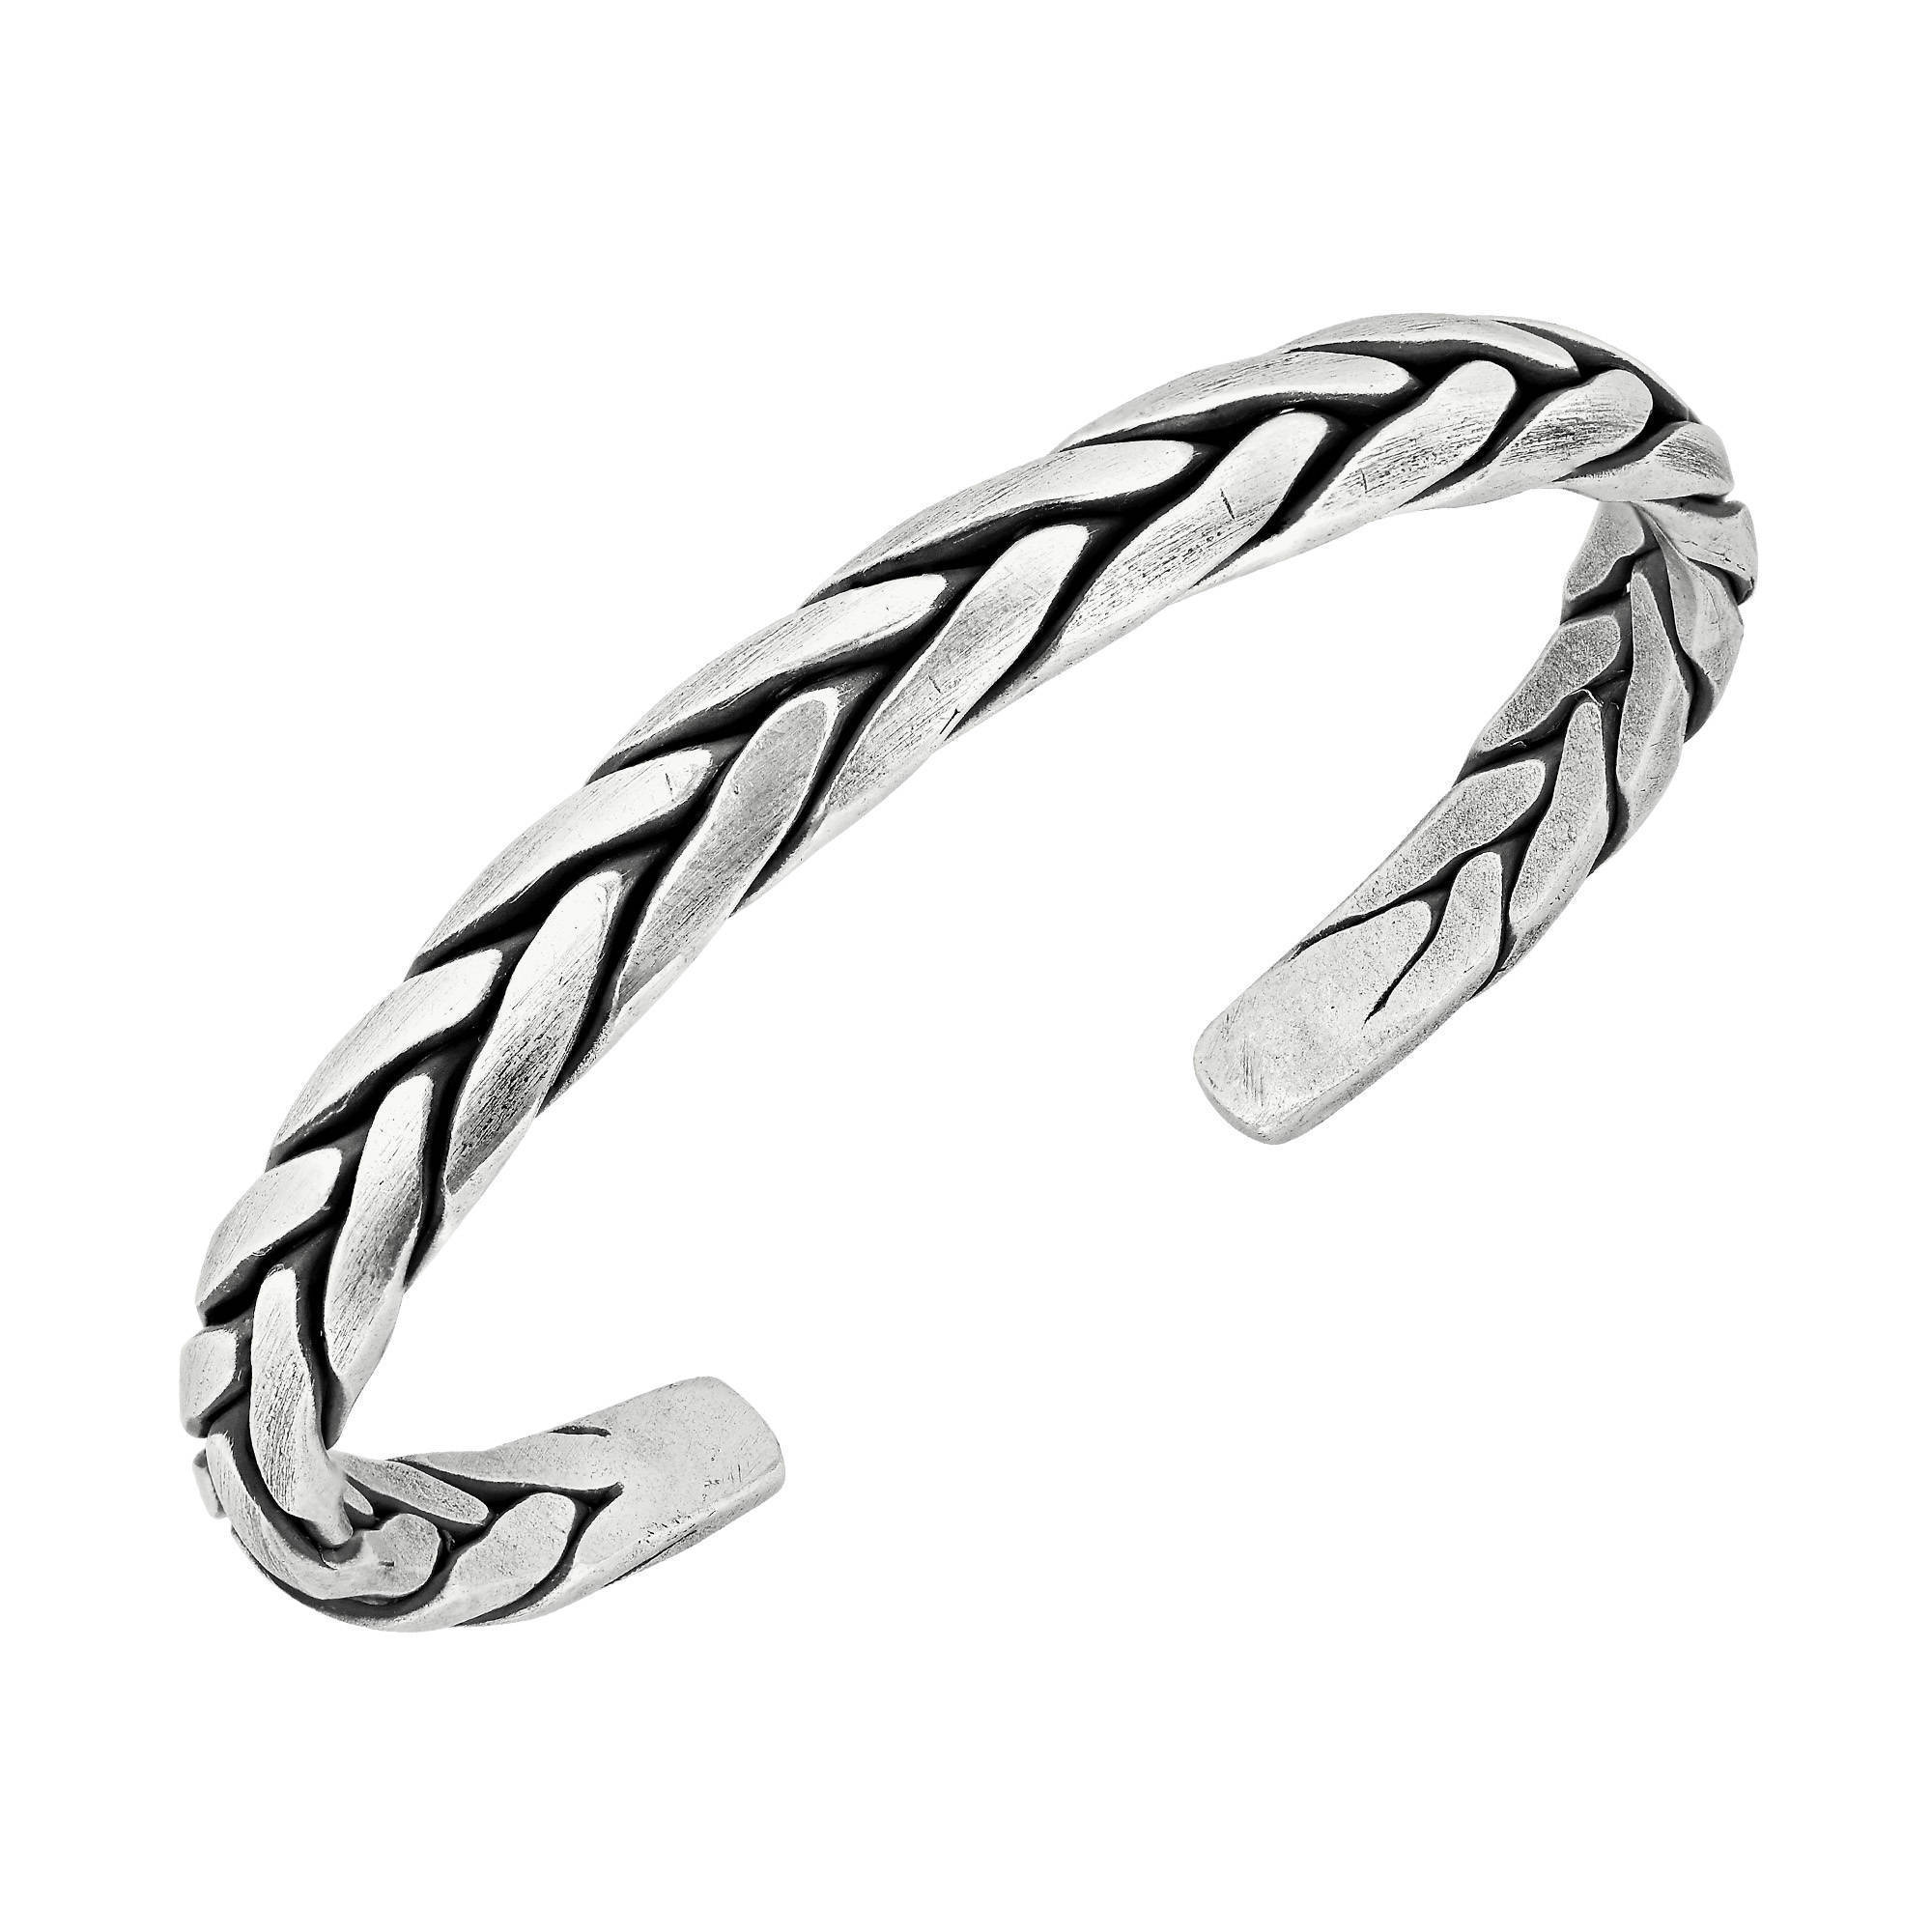 sterling bracelet silver handmade watches pure solid product jewelry thailand hand braided tribe karen free today hill overstock shipping cuff